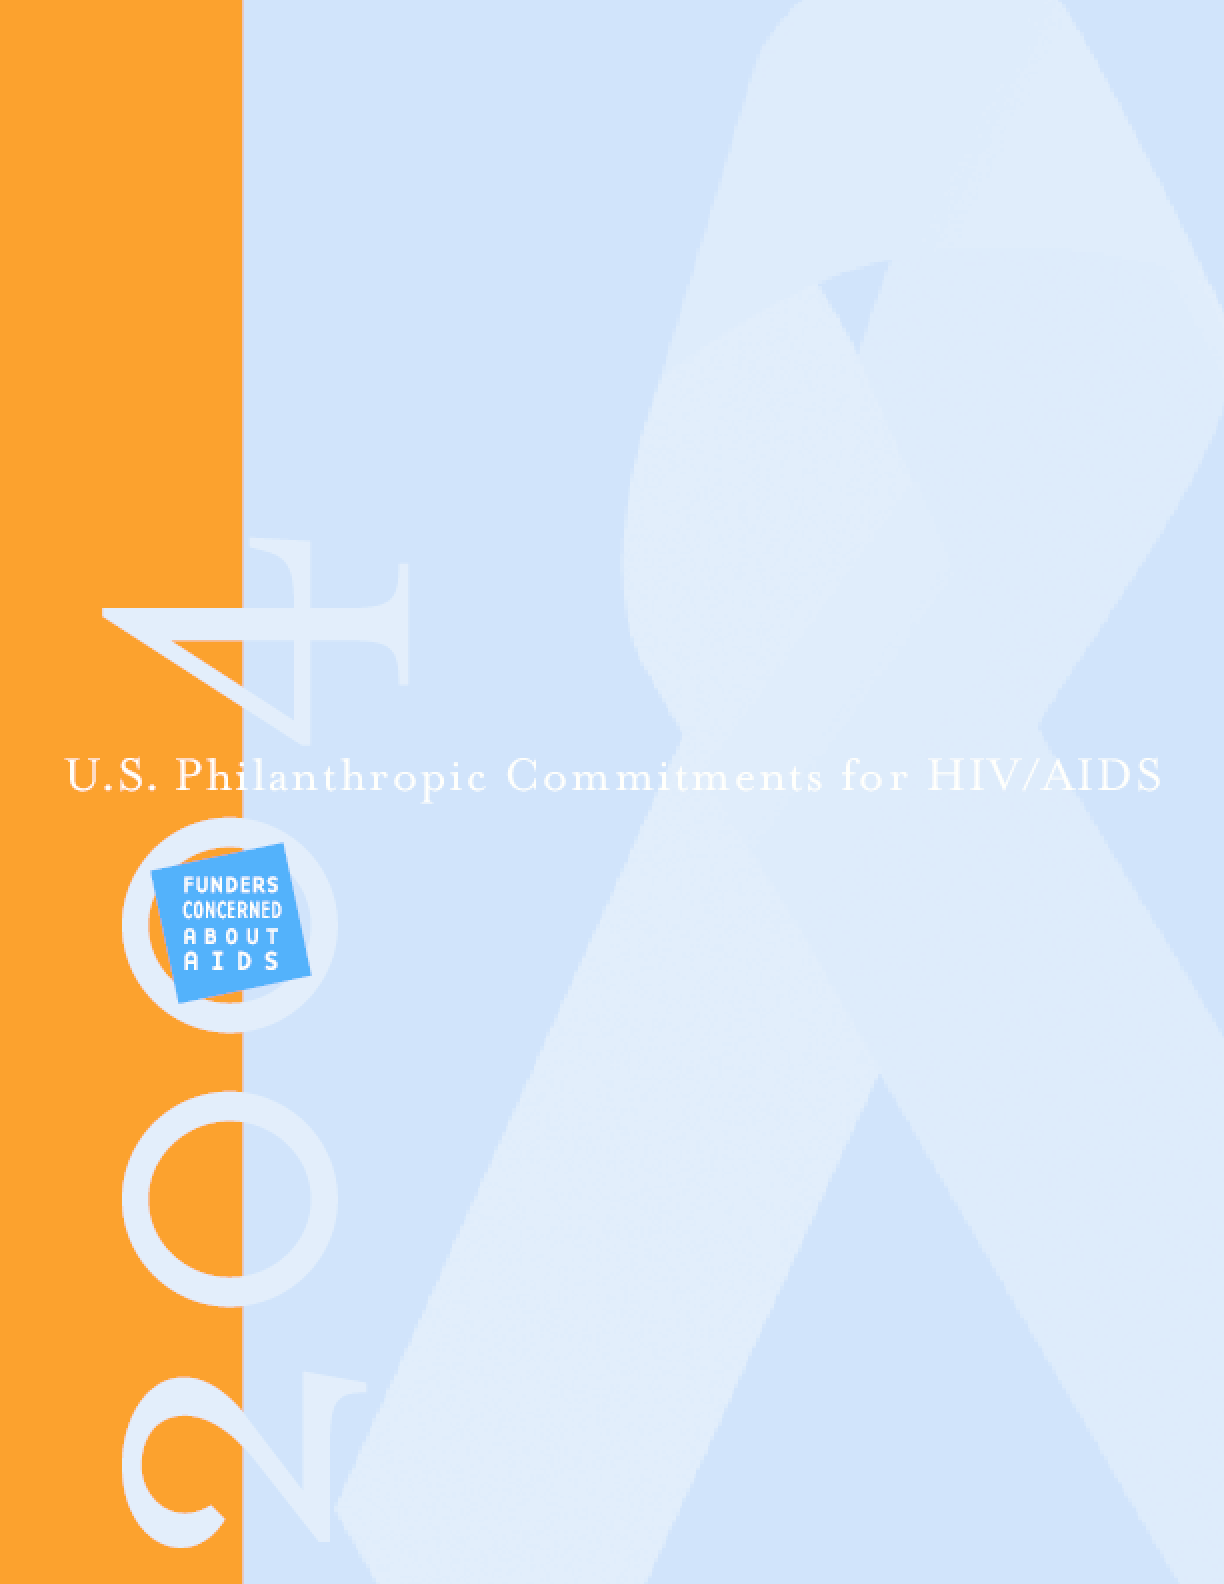 U.S. Philanthropic Commitments For HIV/AIDS 2004